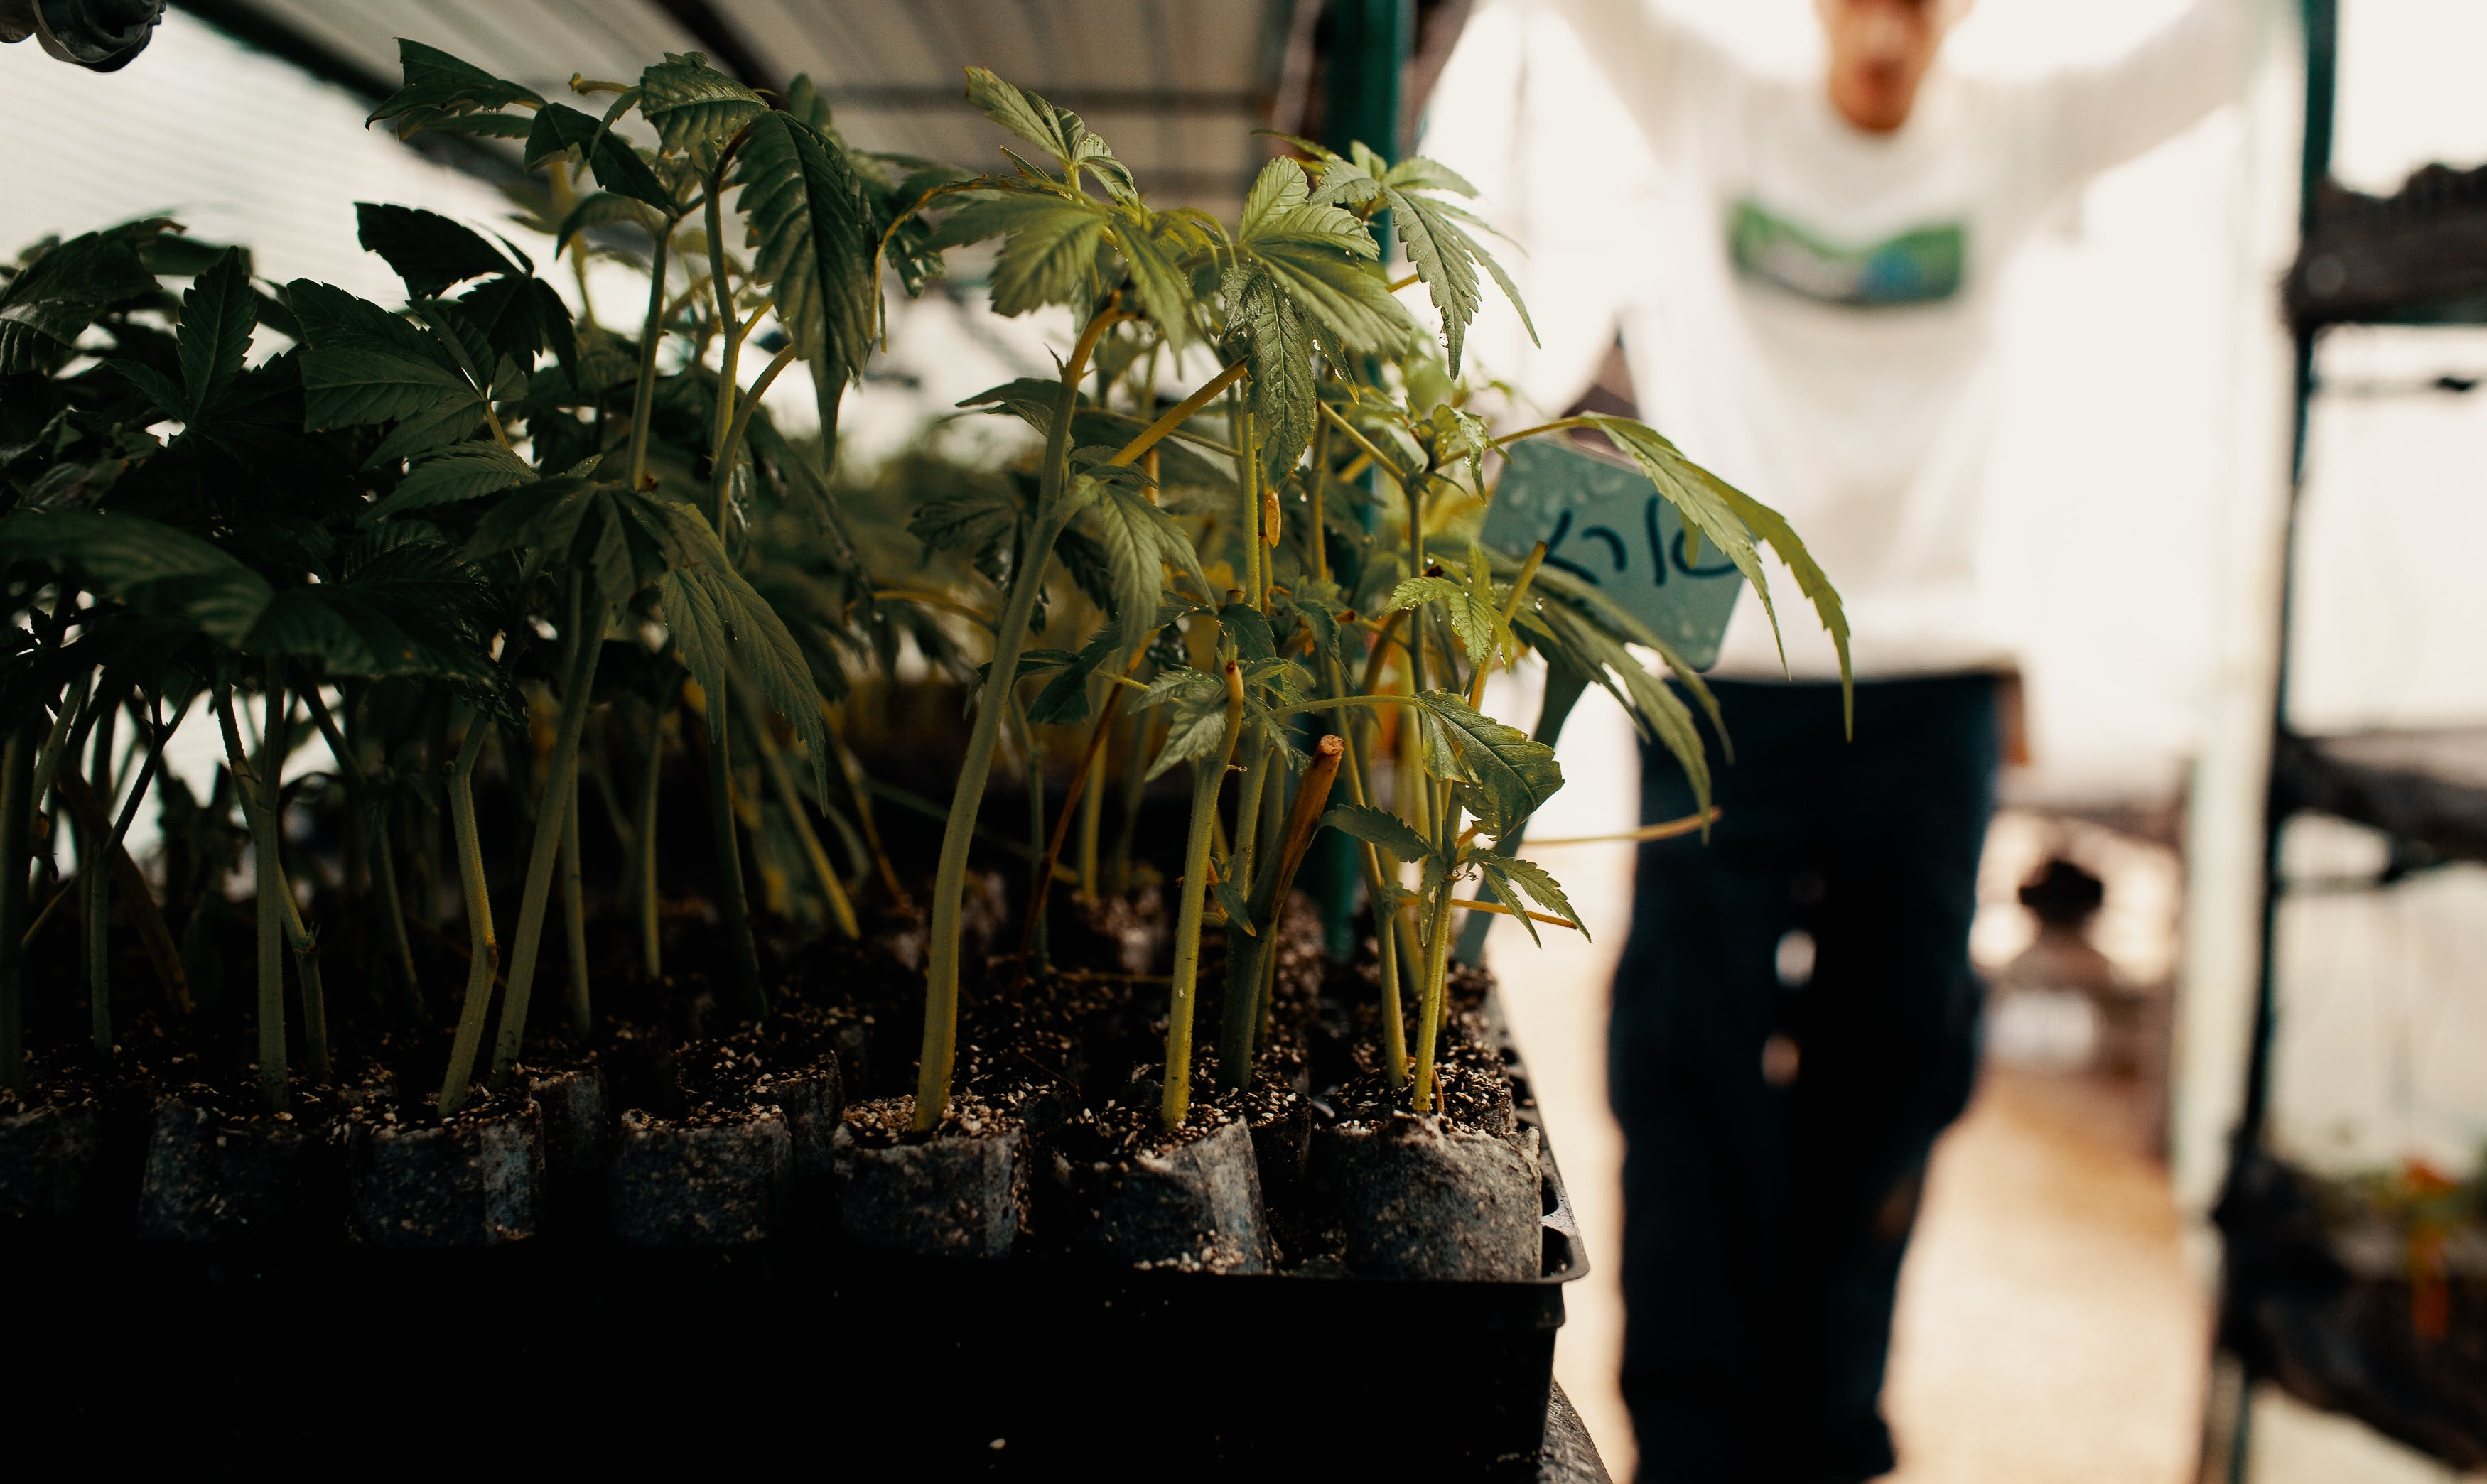 Cannabis Breeding 101: Small cannabis plants ready to be properly potted